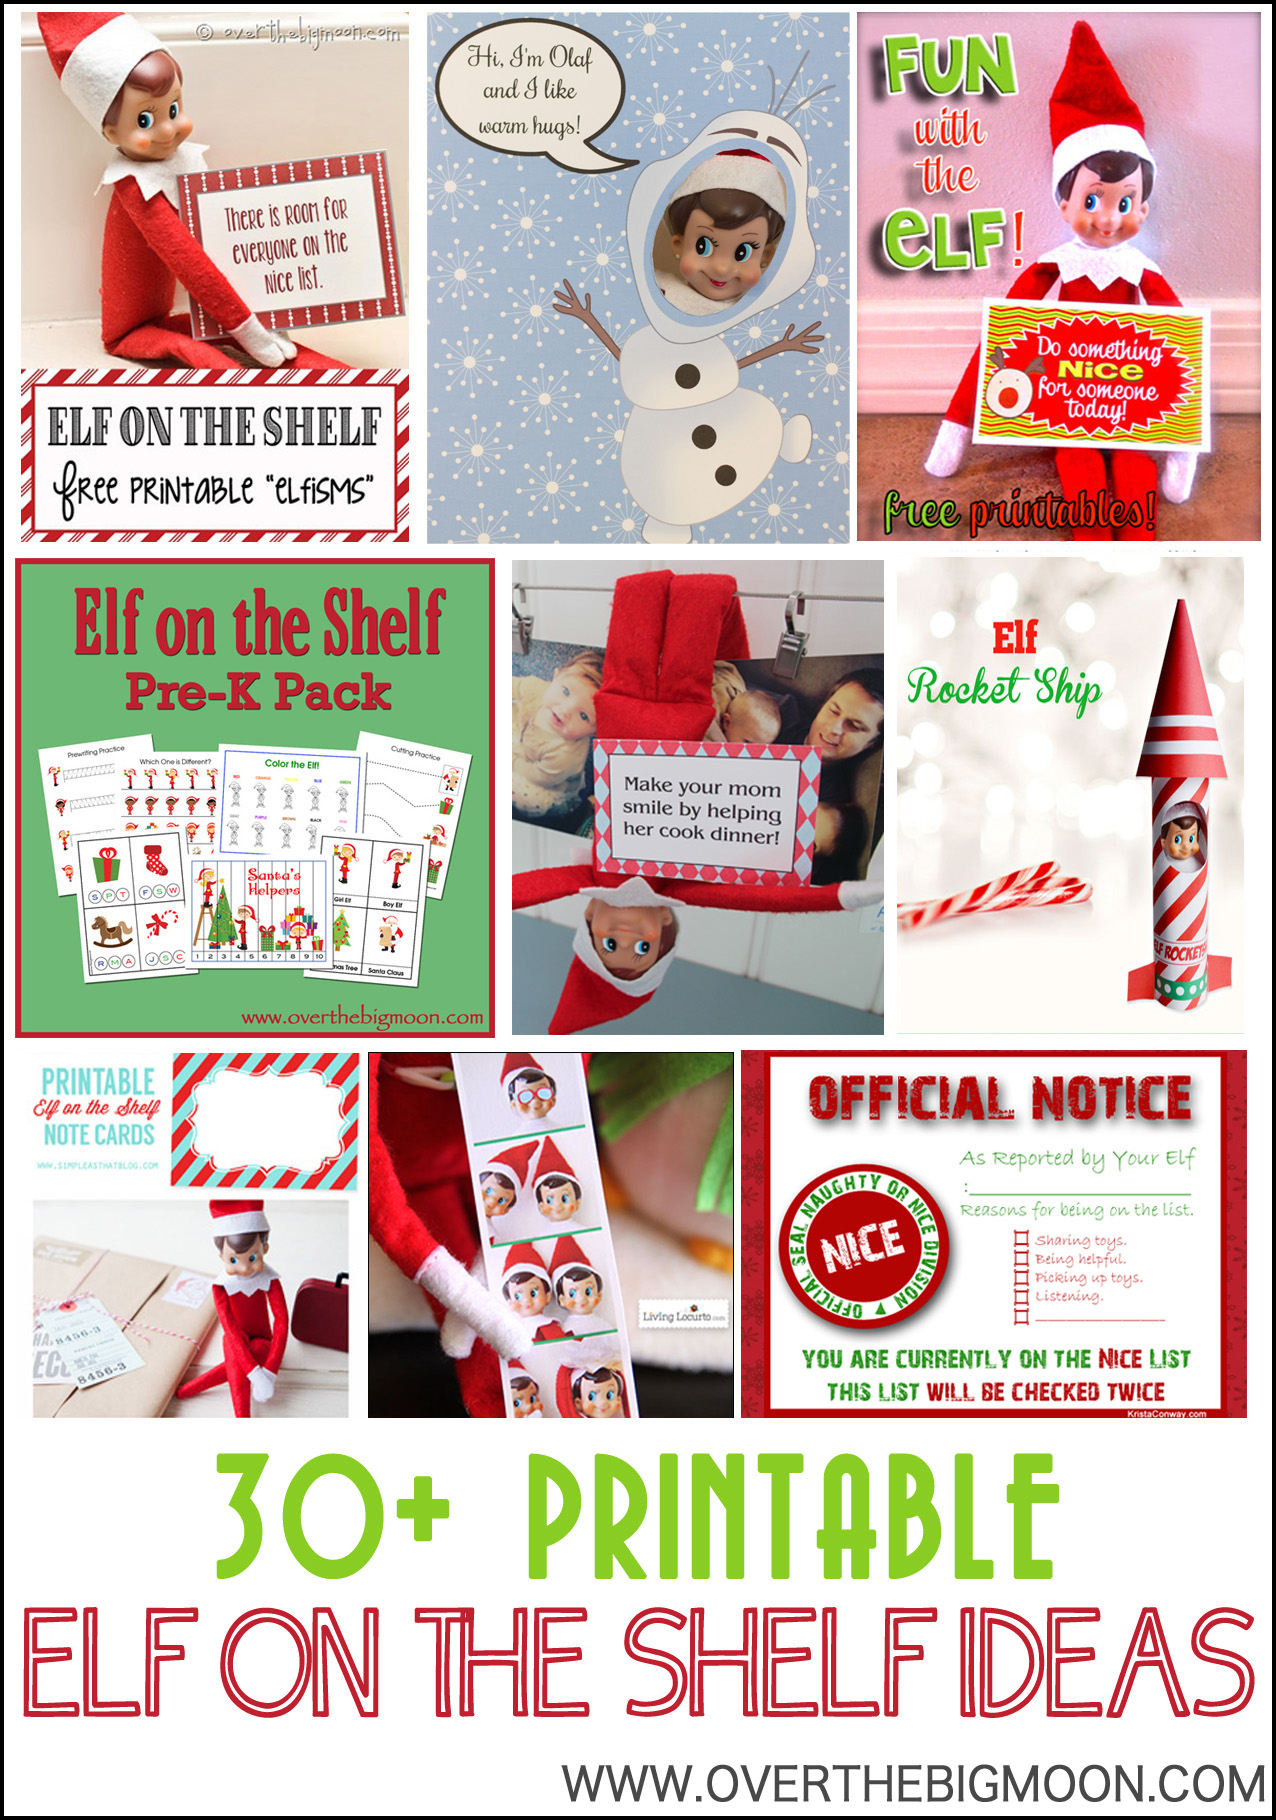 30+ Printable Elf On The Shelf Ideas - Over The Big Moon - Elf On The Shelf Kissing Booth Free Printable